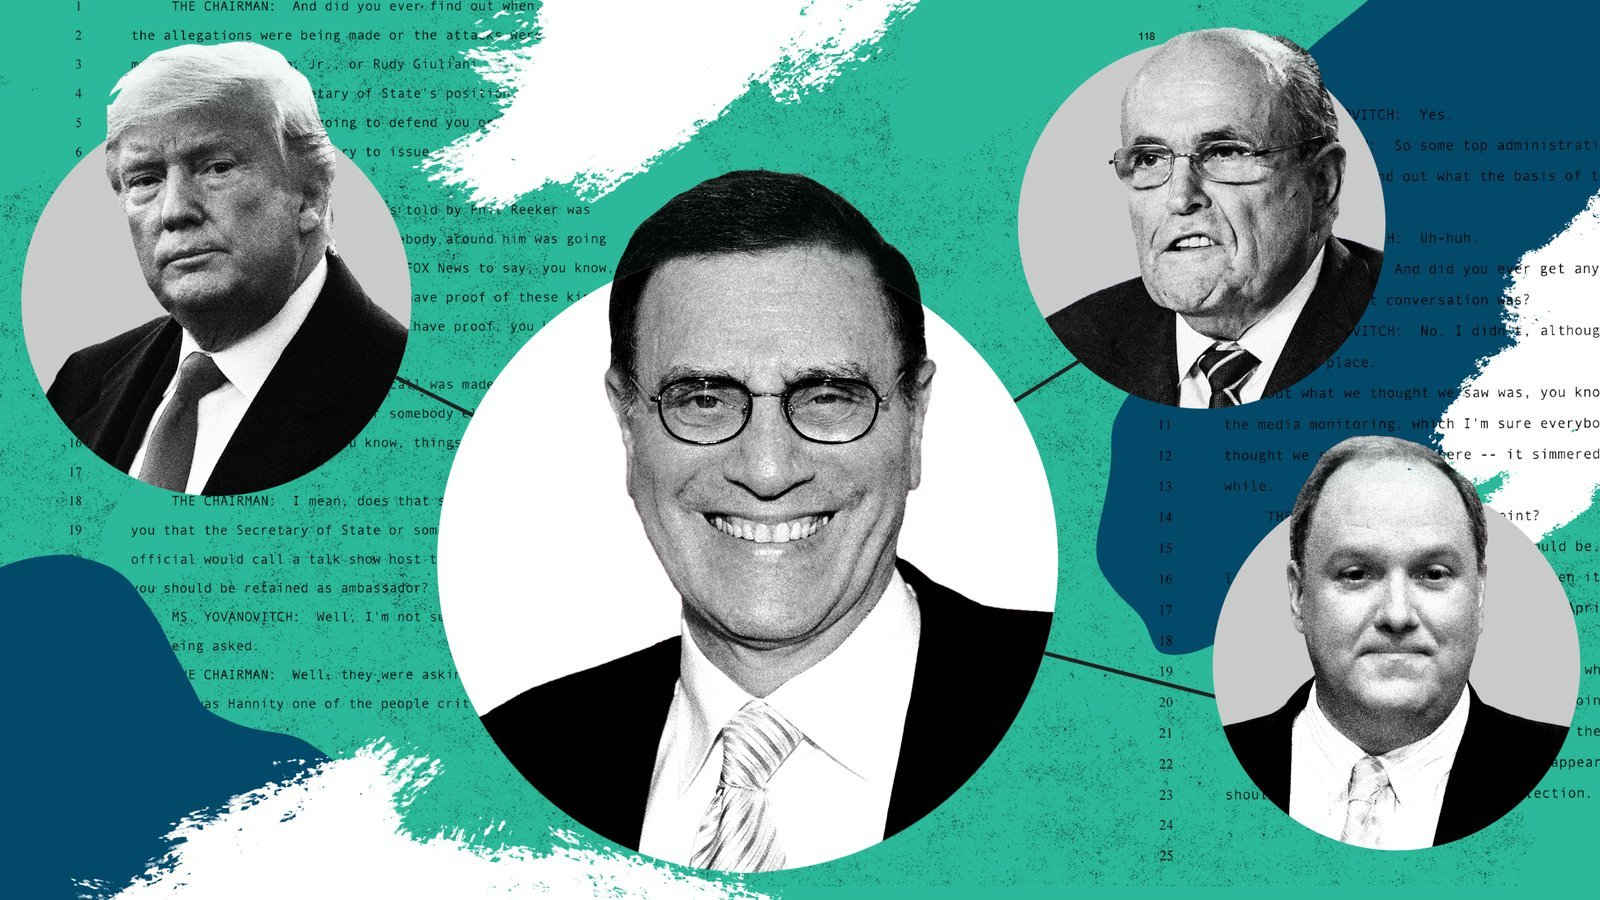 Jimmy Finkelstein, the owner of The Hill, has flown under the radar. But he's played a key role in the Ukraine scandal